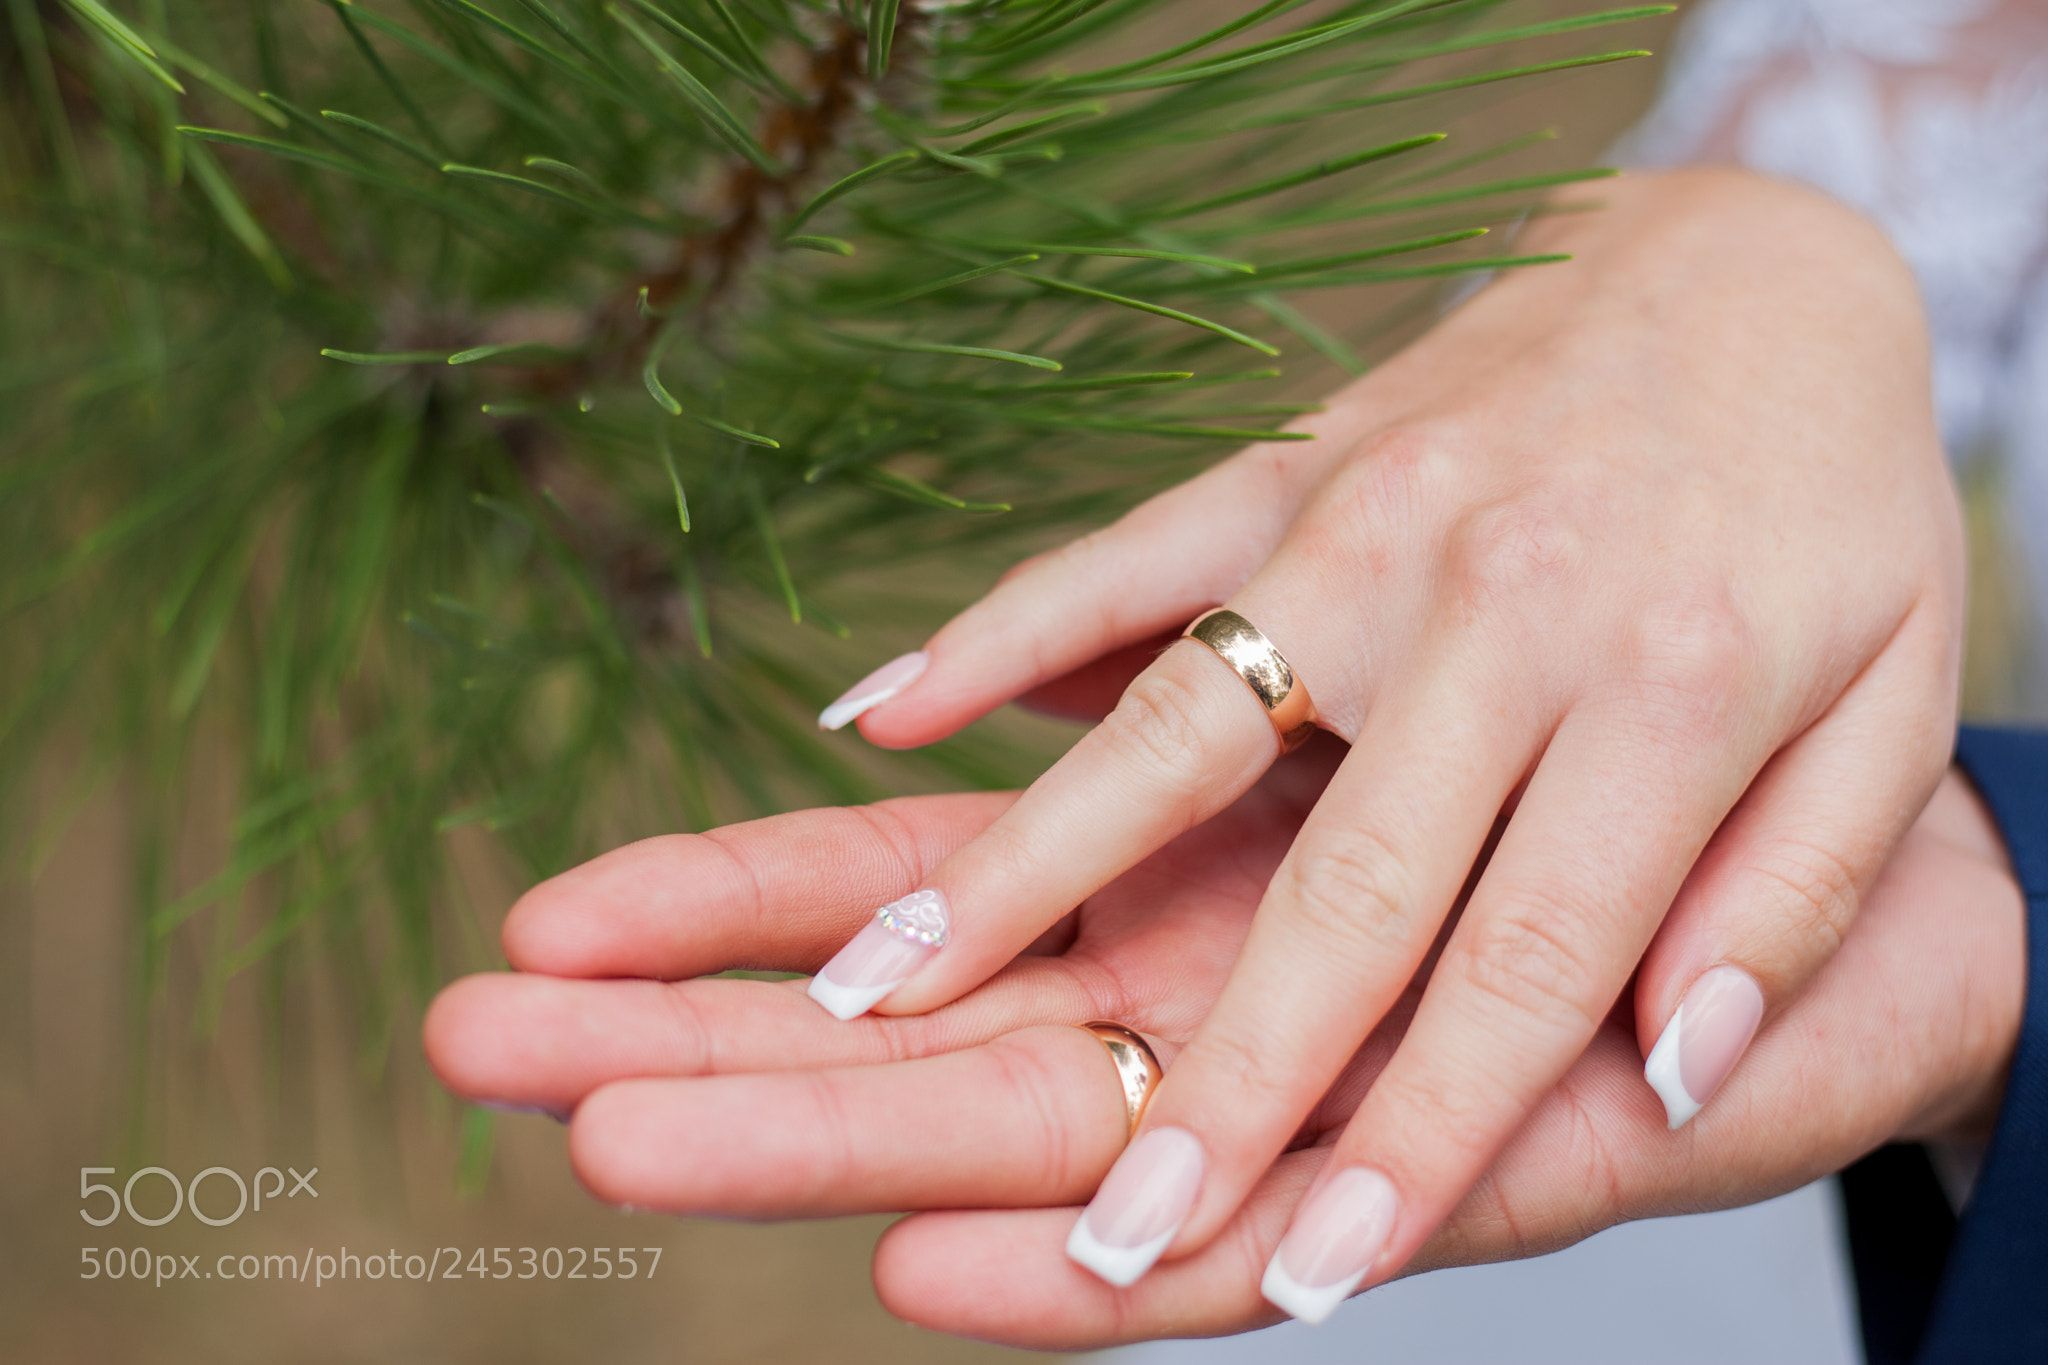 Wedding Bride Couple Groom Ring Love Engagement Finger Husband Marriage People White By Prochanphotostock Groom Ring Wedding Rings Engagement Finger